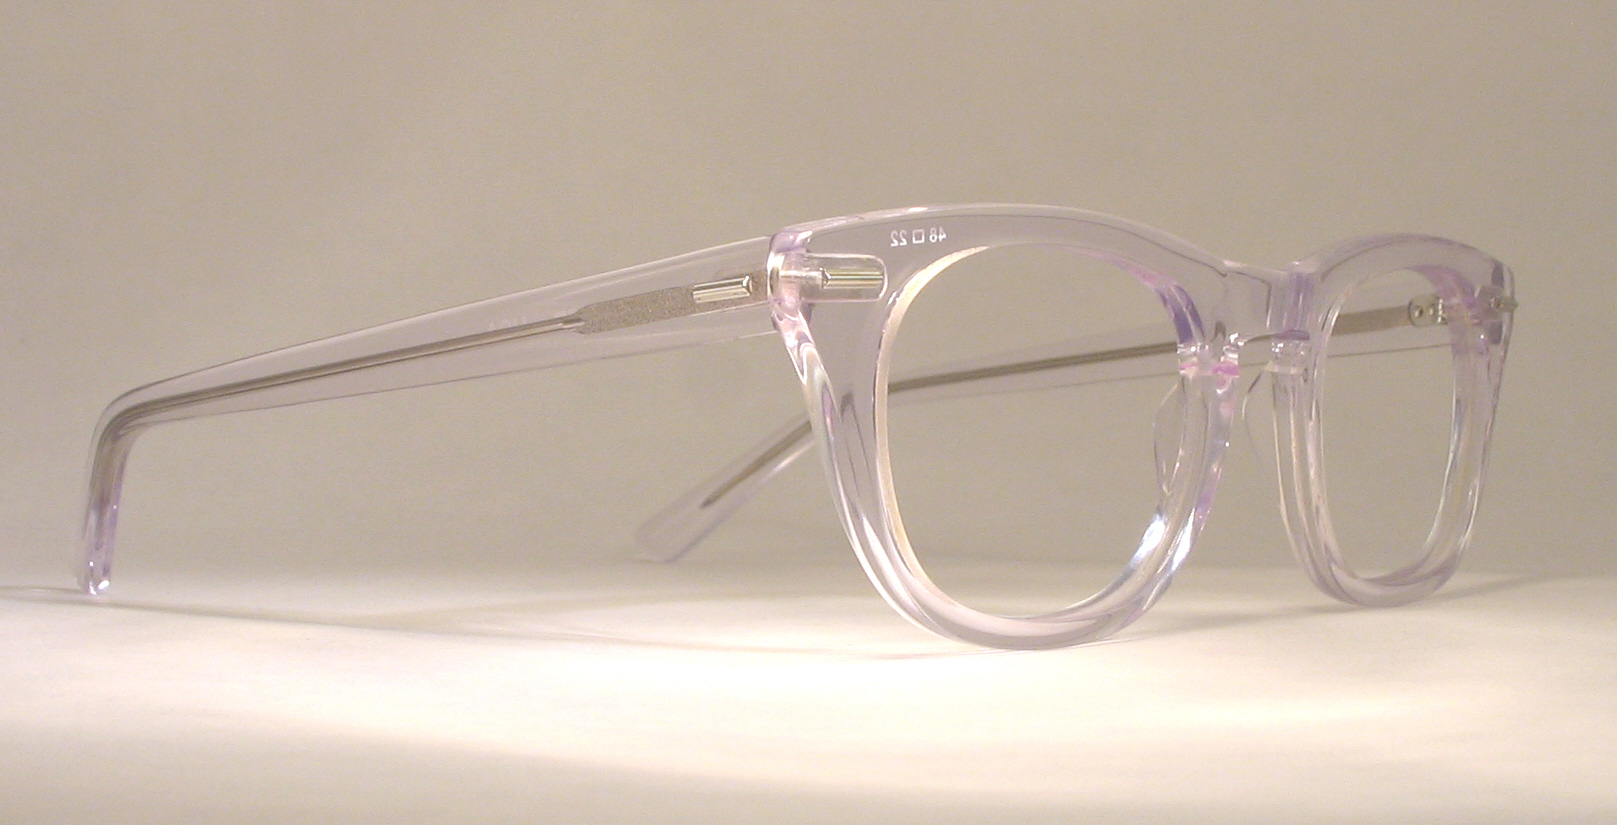 plastic vintage eyeglasses hinge photo under 350 kb